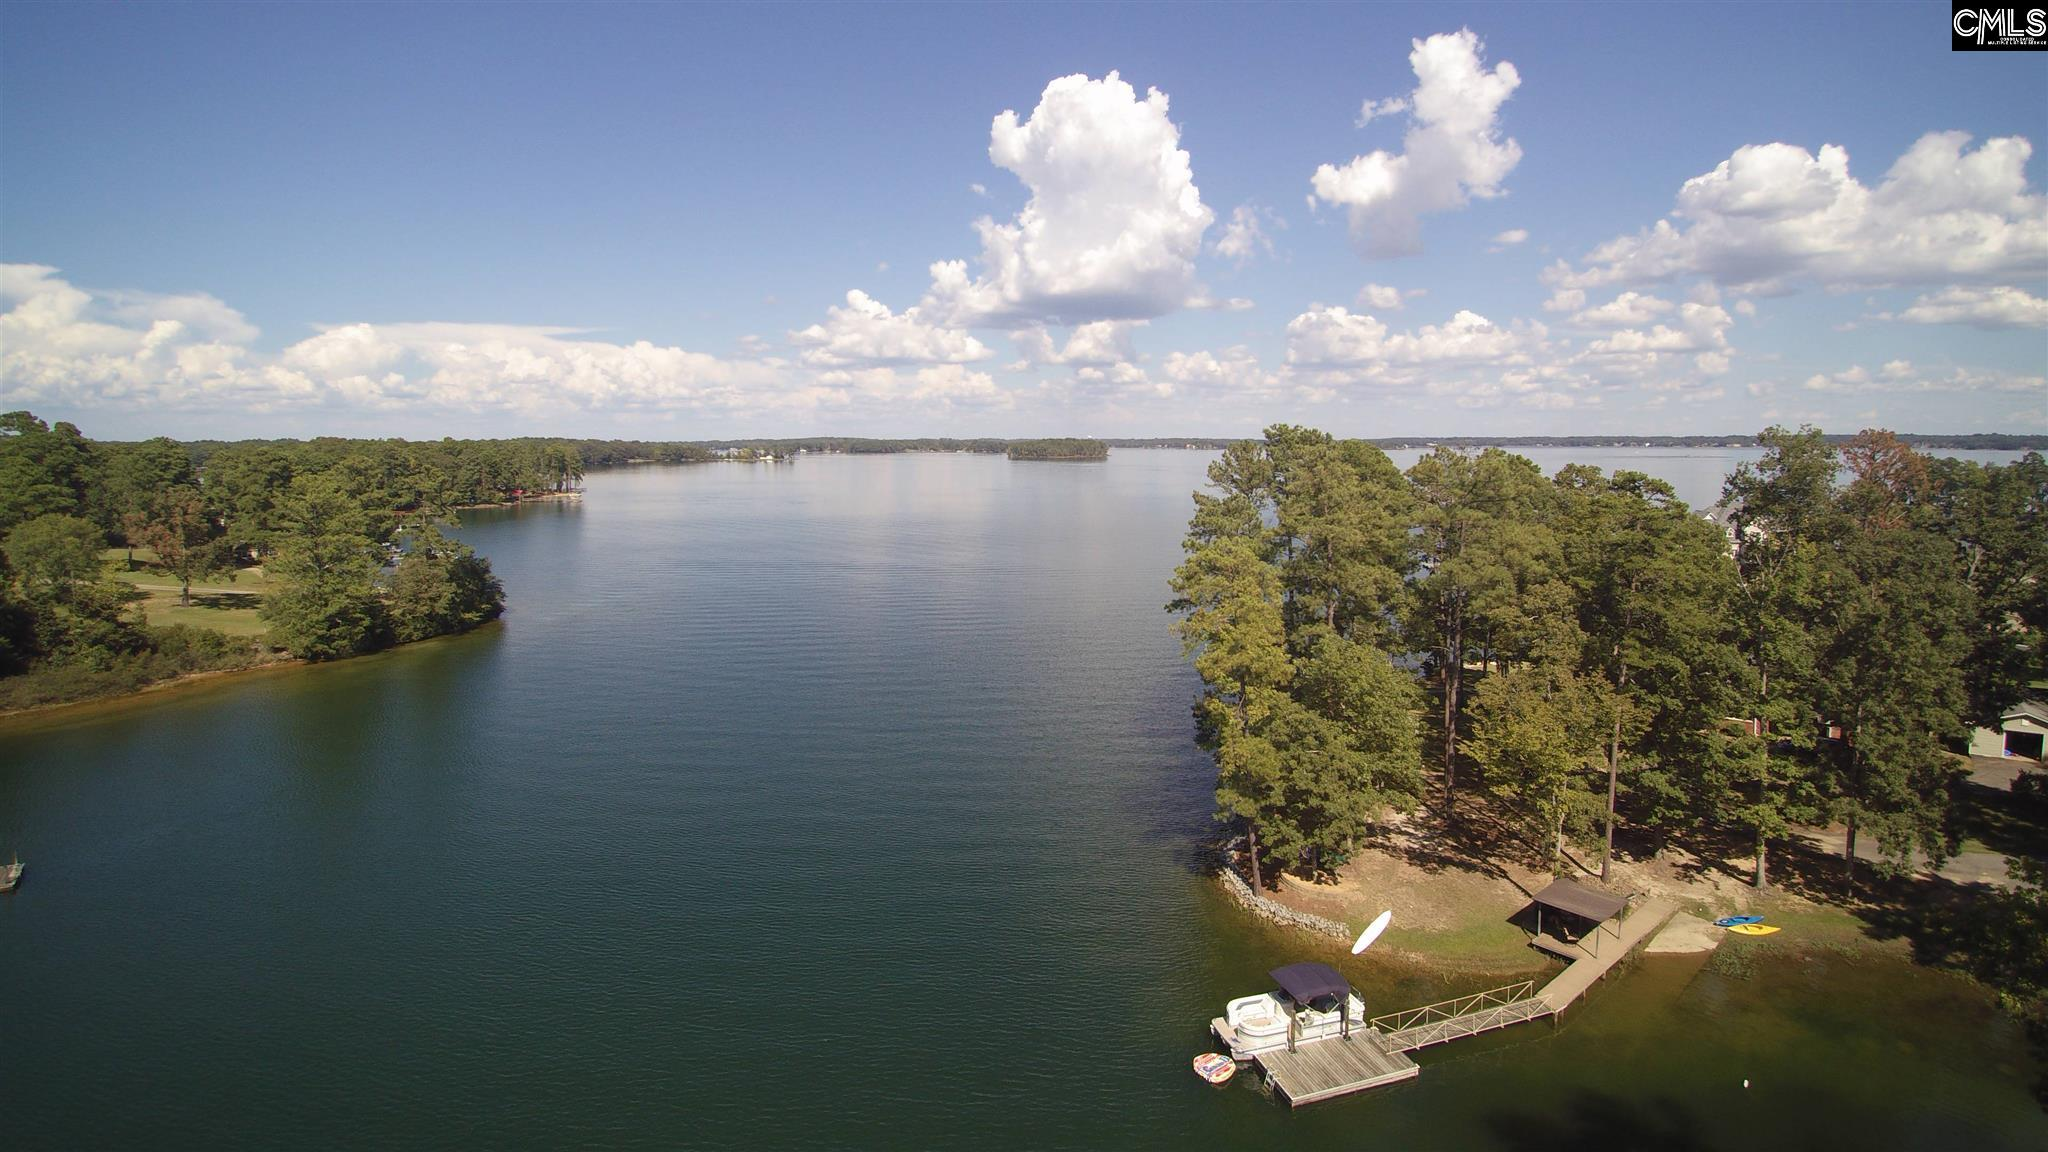 Catamaran #Lot 3 Chapin, SC 29036